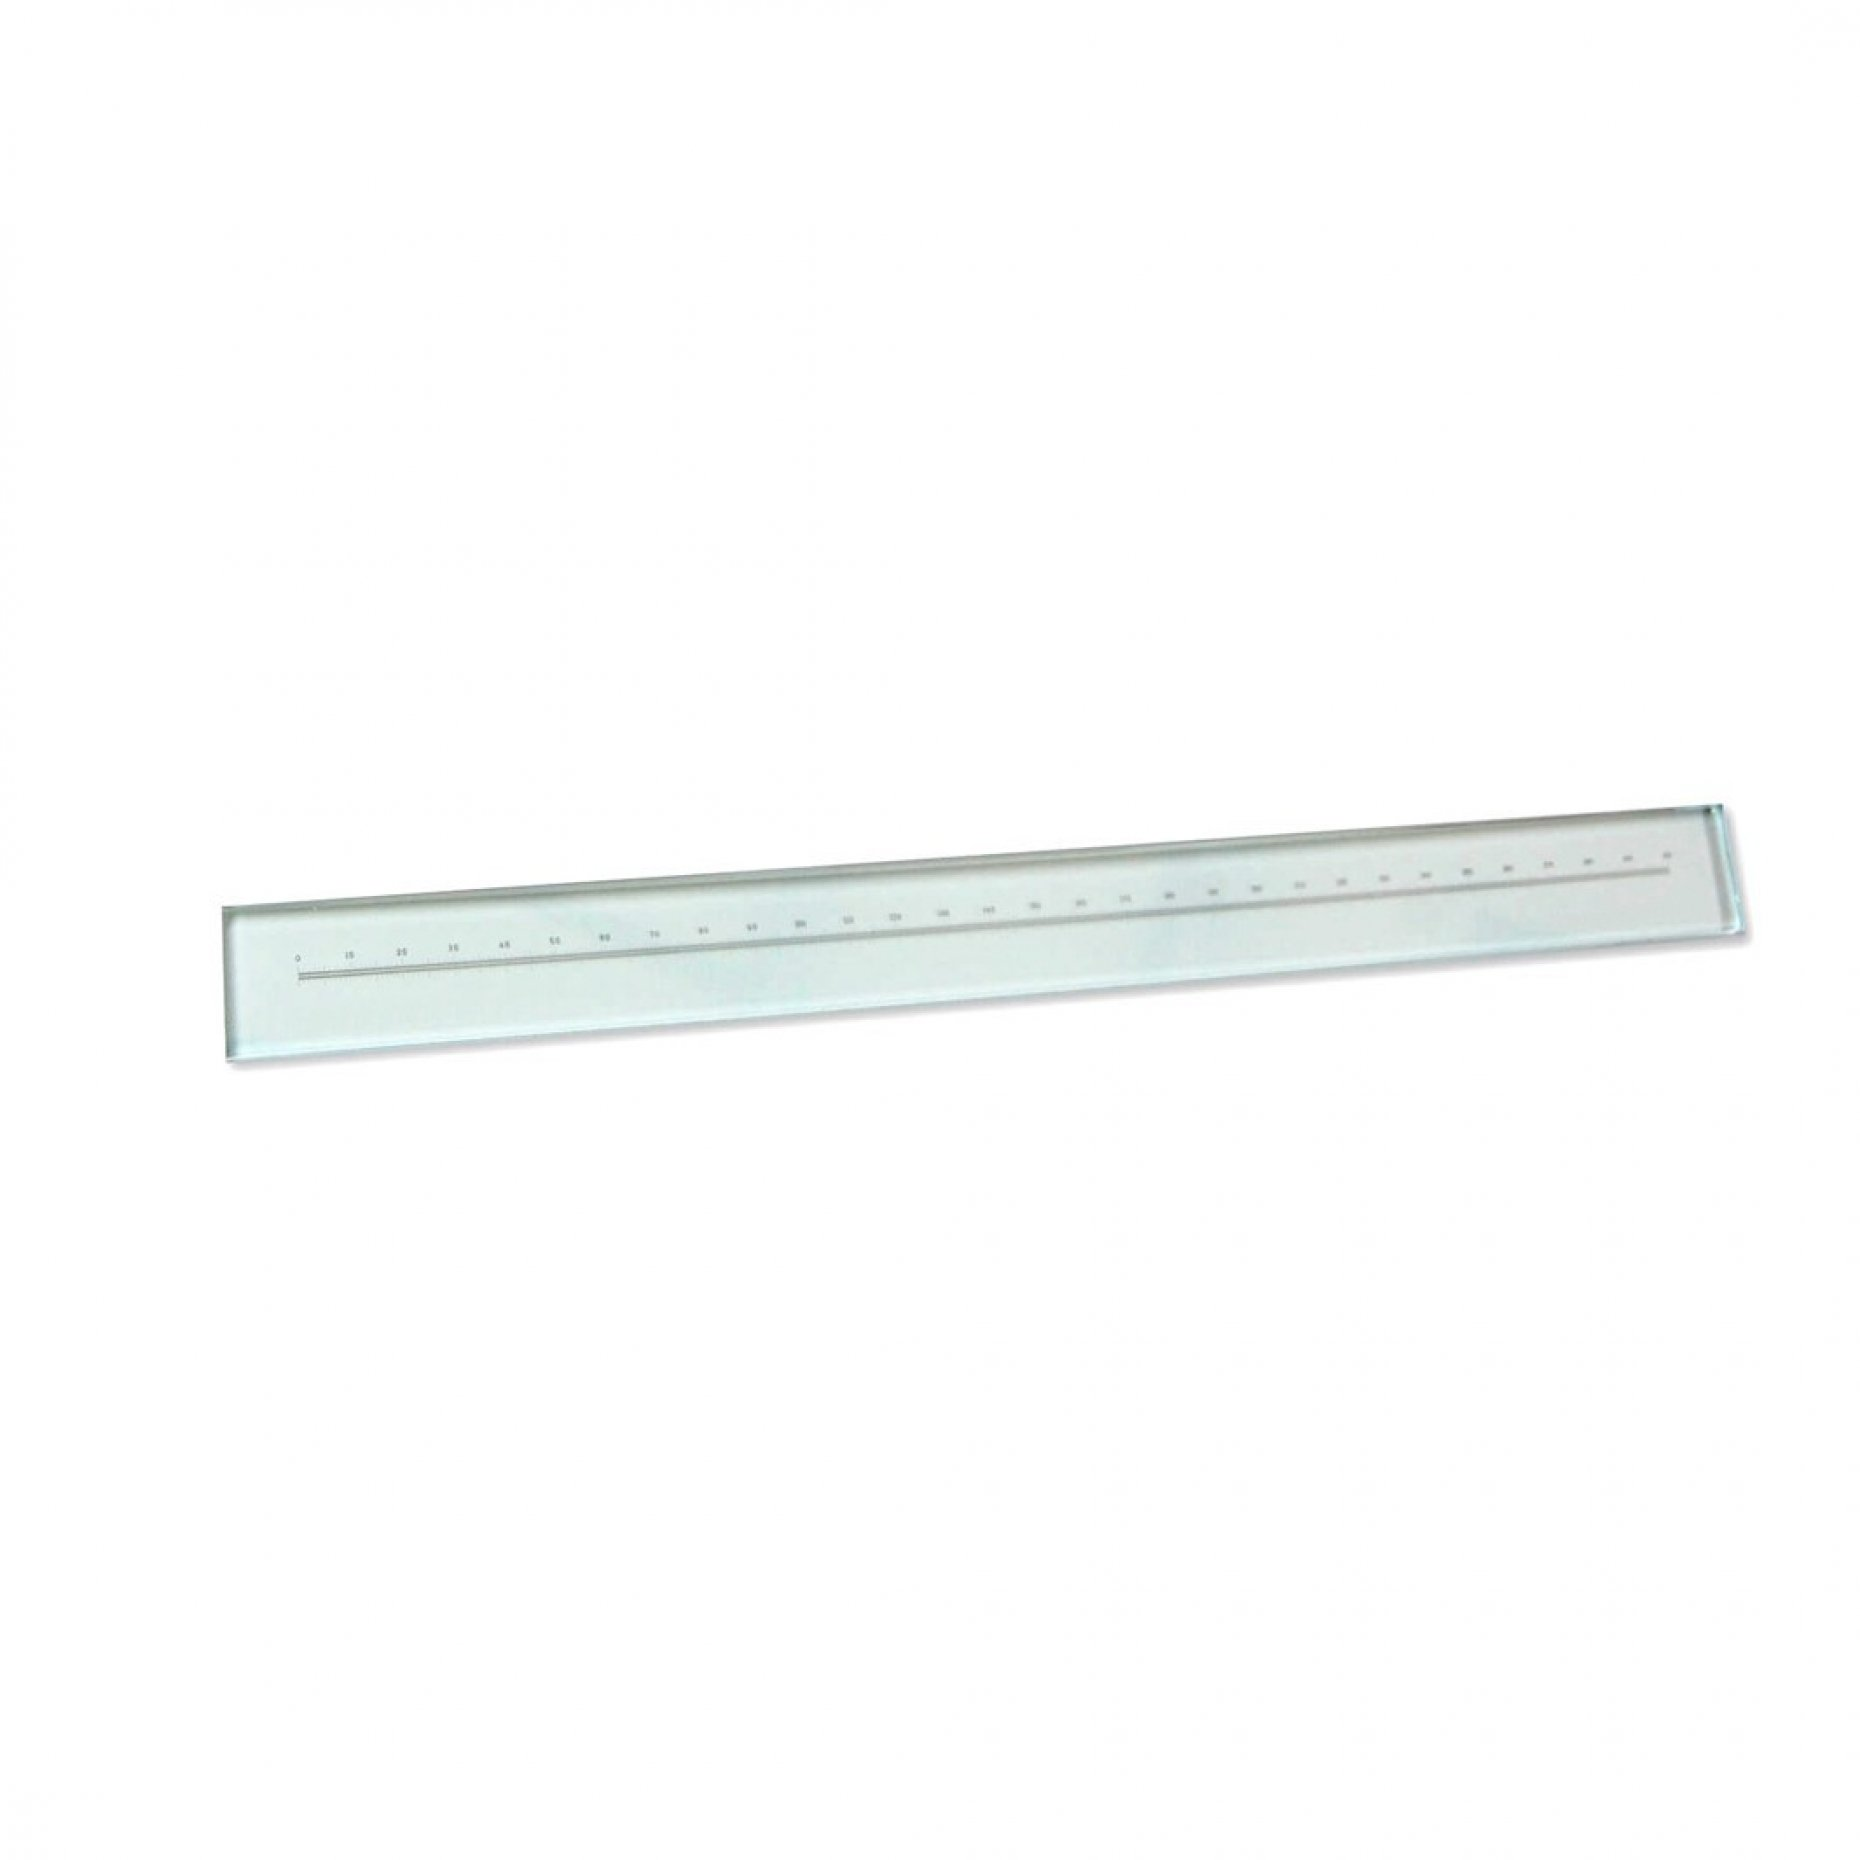 PCA800 Replacement Scale 600mm/0.1mm